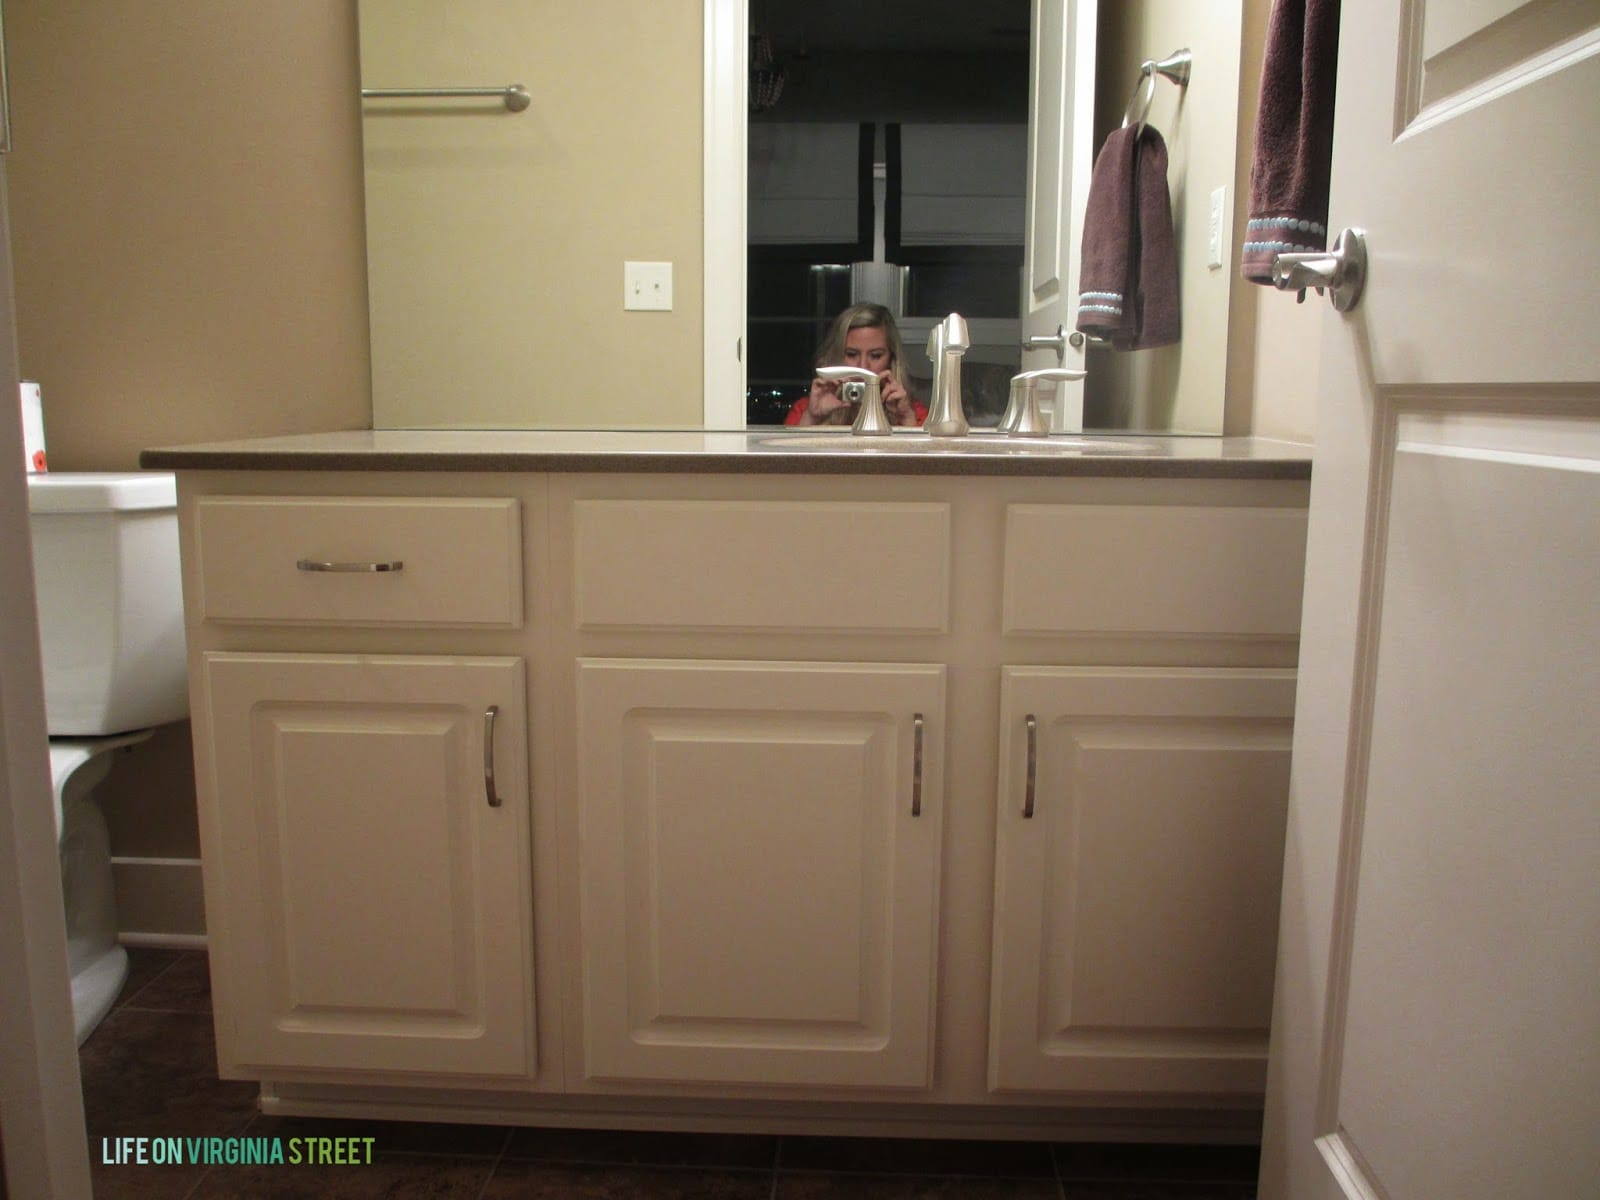 How to paint bathroom cabinets - Bathroom Vanity Makeover Using Country Chic Paint